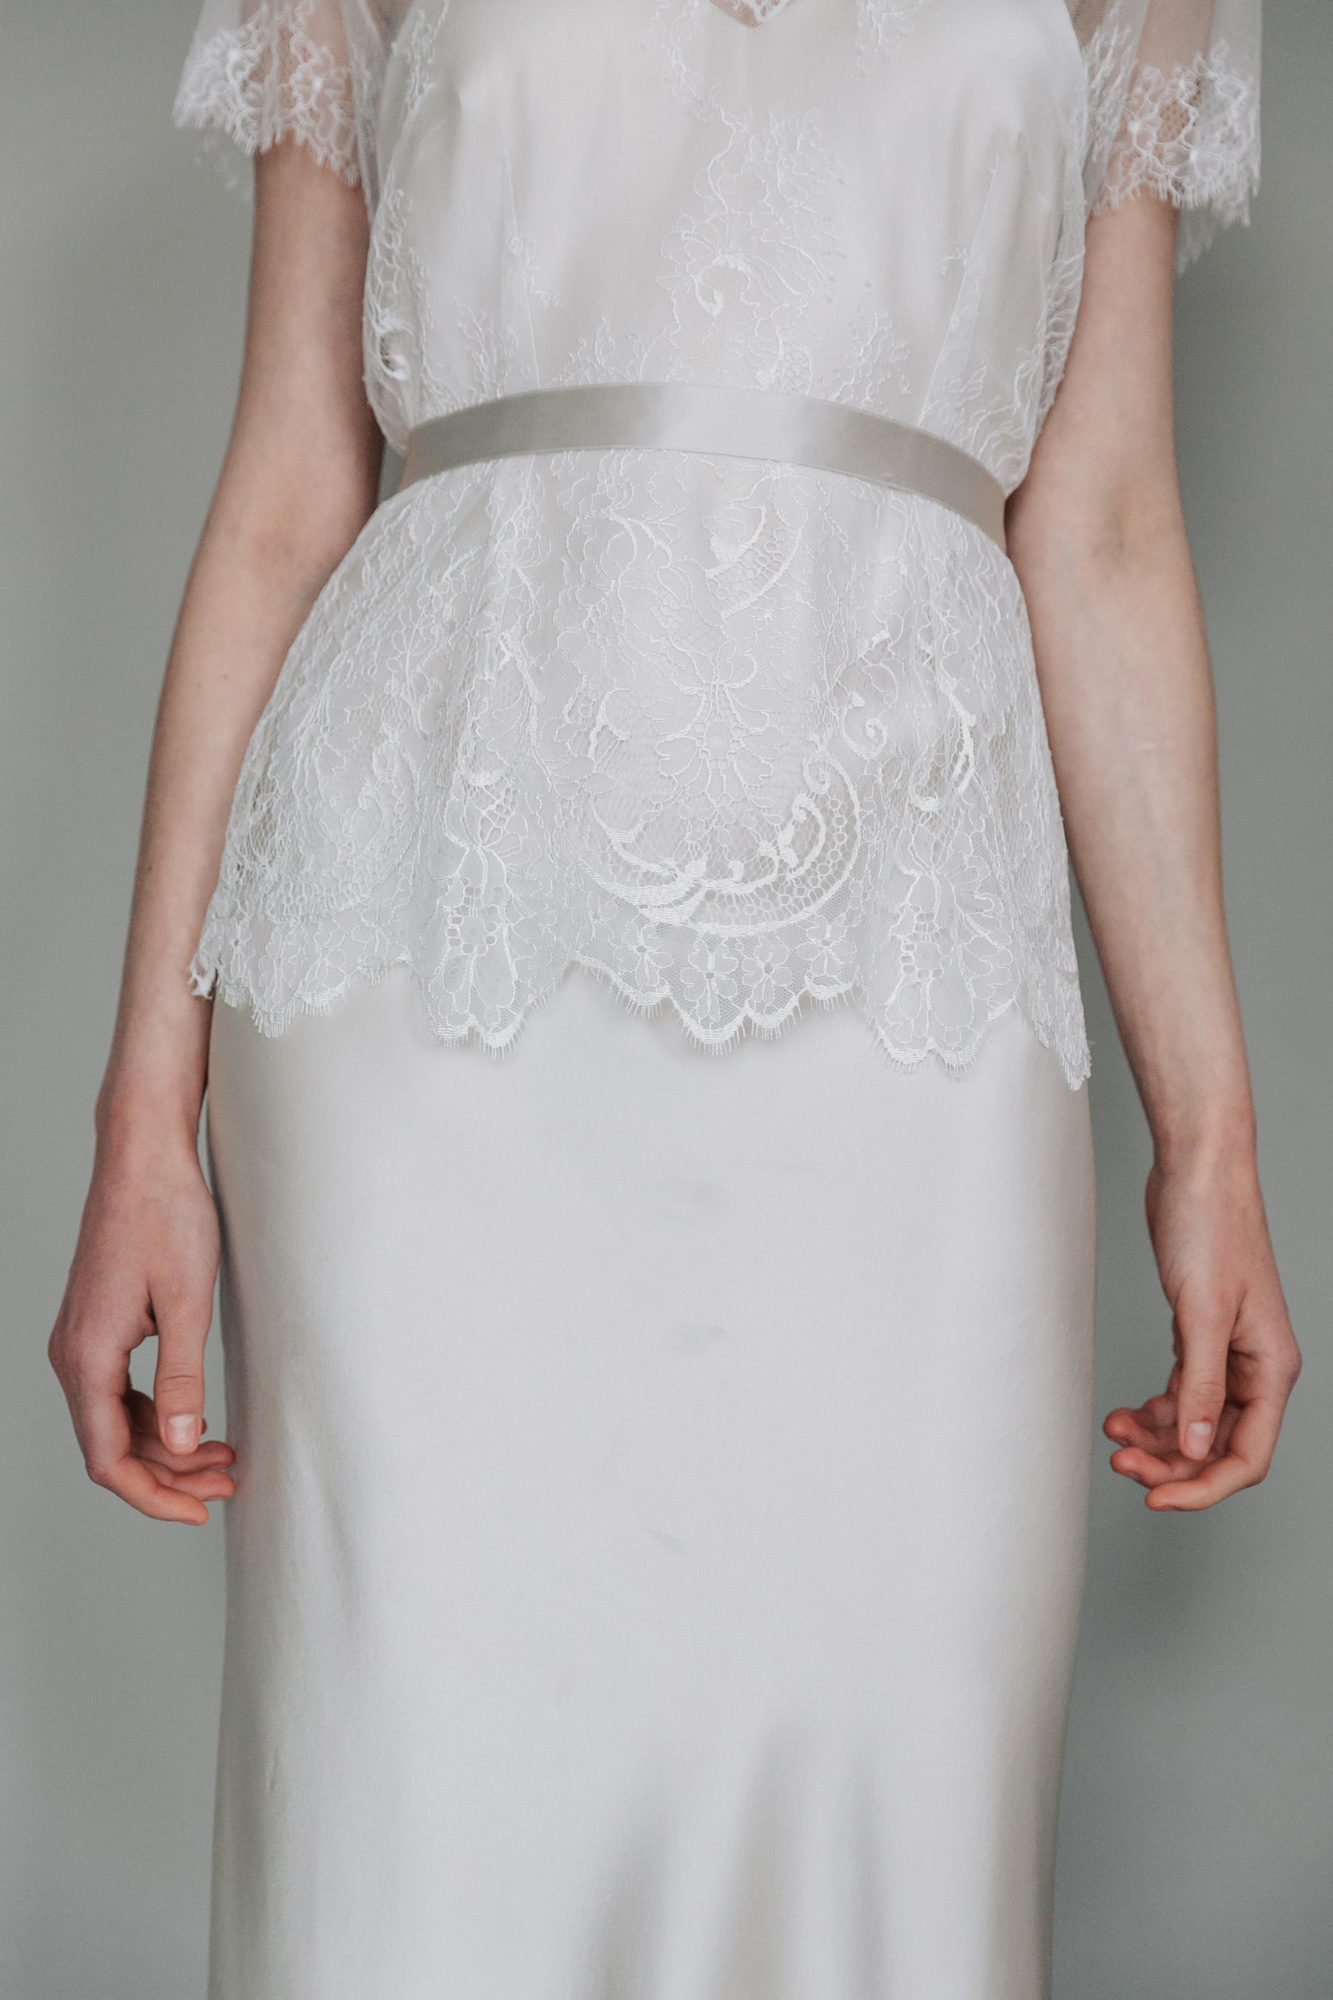 Kate-Beaumont-Sheffield-Lilac-Bridal-Separates-Lace-and-Silk-Wedding-Gown-3.jpg